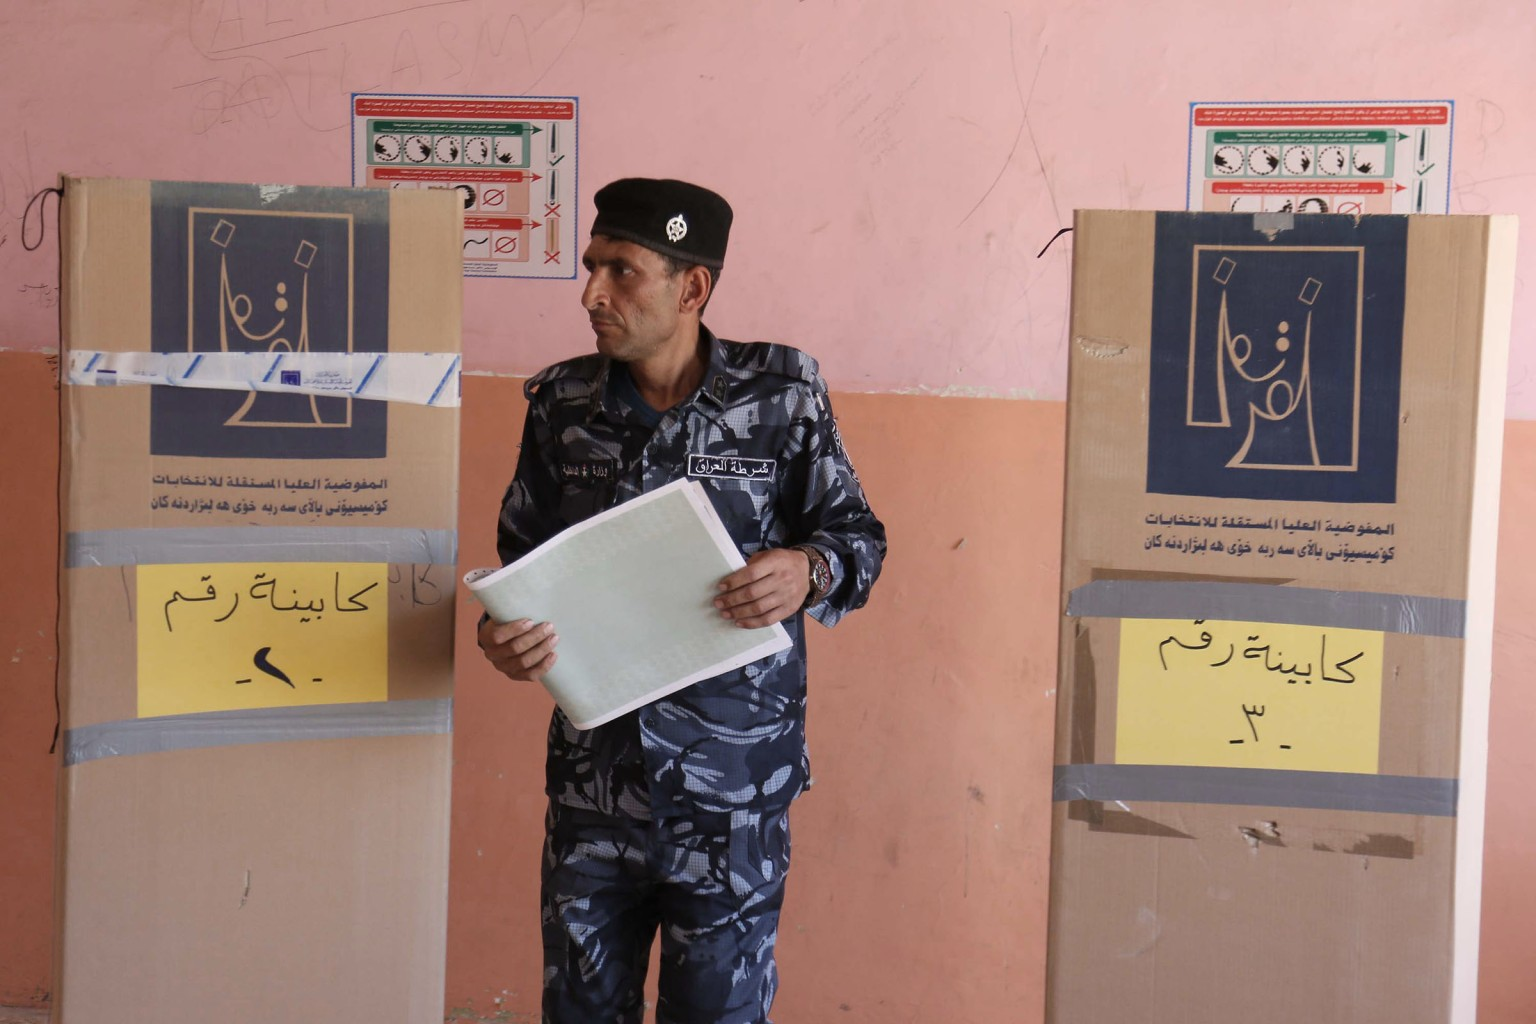 A member of the Iraqi security forces votes at a polling station in Karbala on May 10 ahead of parliamentary elections on May 12. MOHAMMED SAWAF/AFP/Getty Images